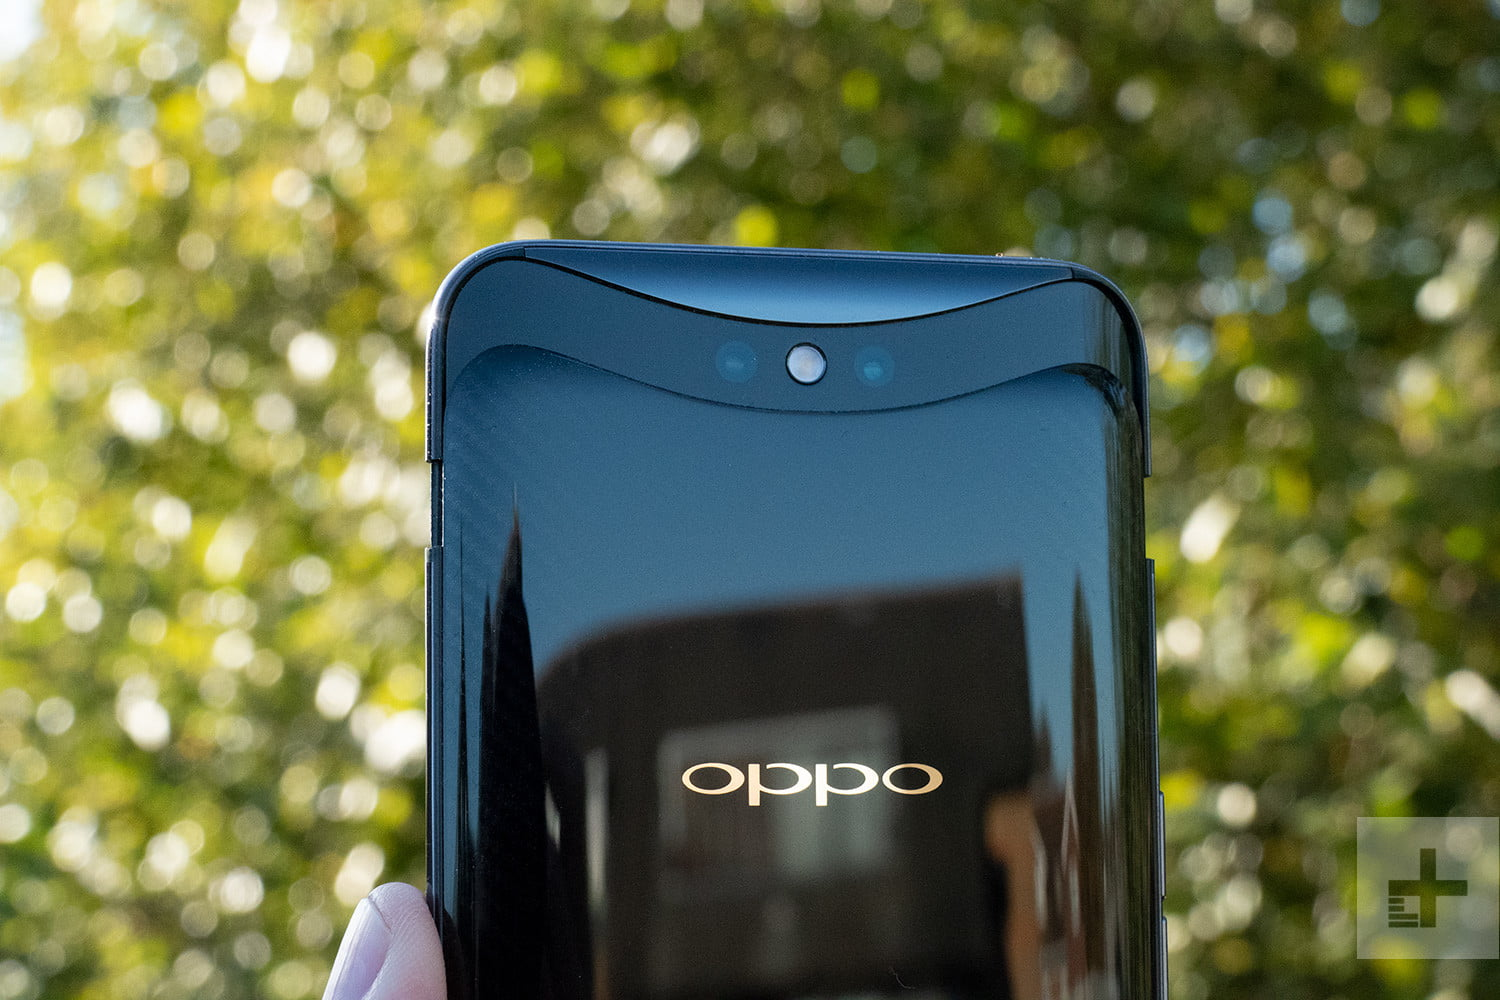 Oppo will unfurl its folding smartphone at the 2019 Mobile World Conference